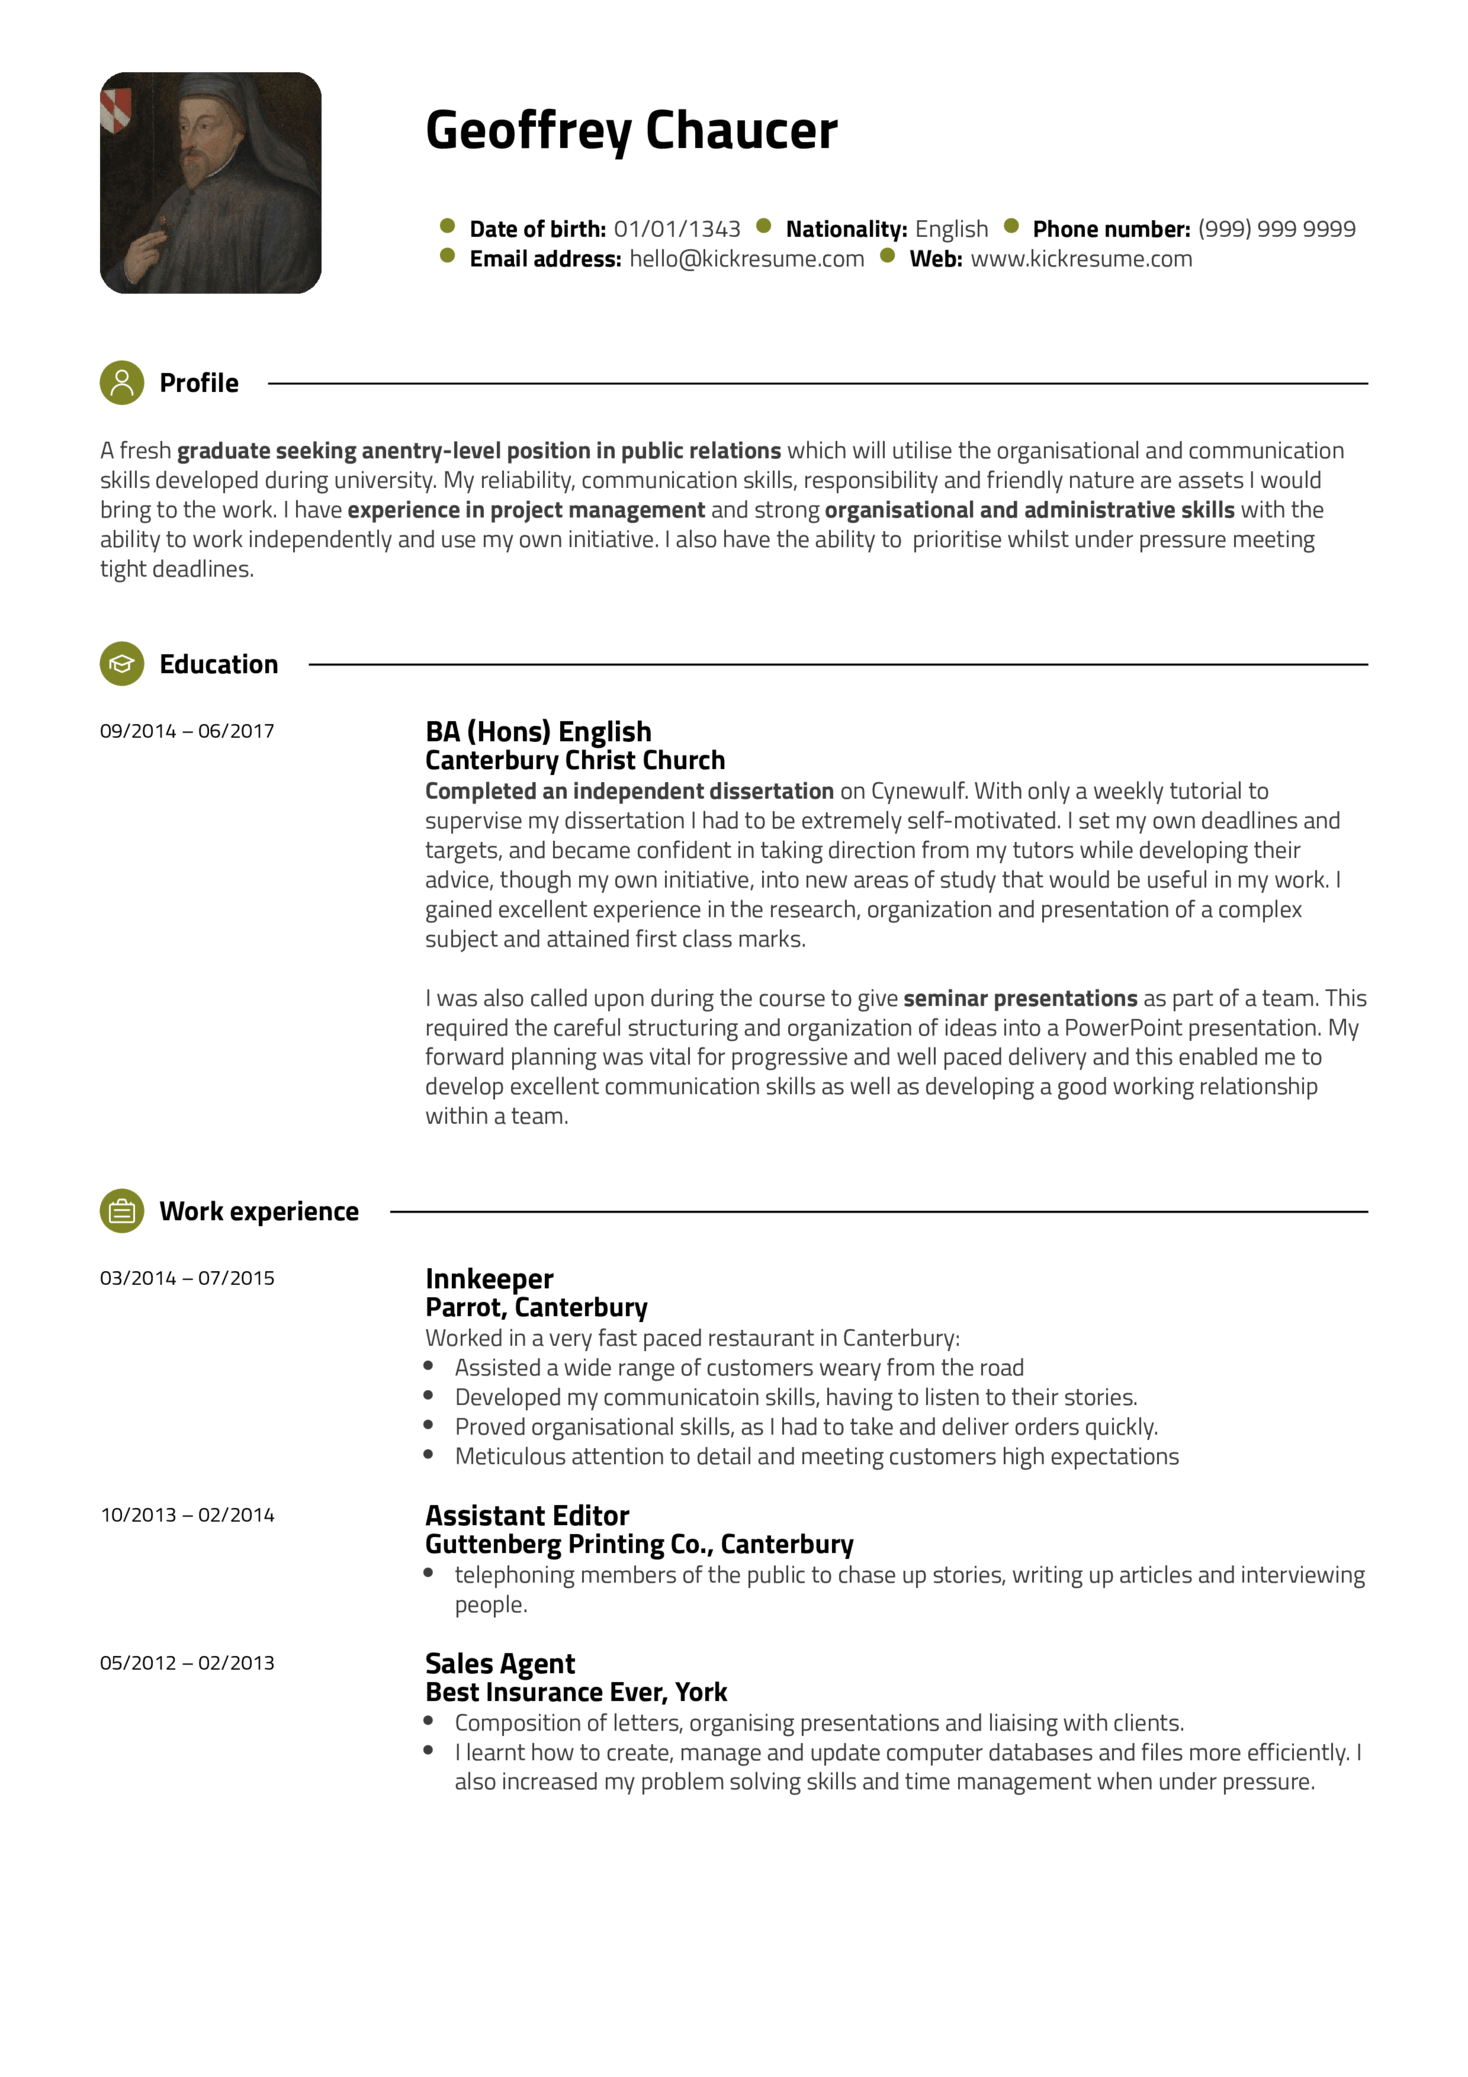 Student Resume Public Relations resume sample | Career help center